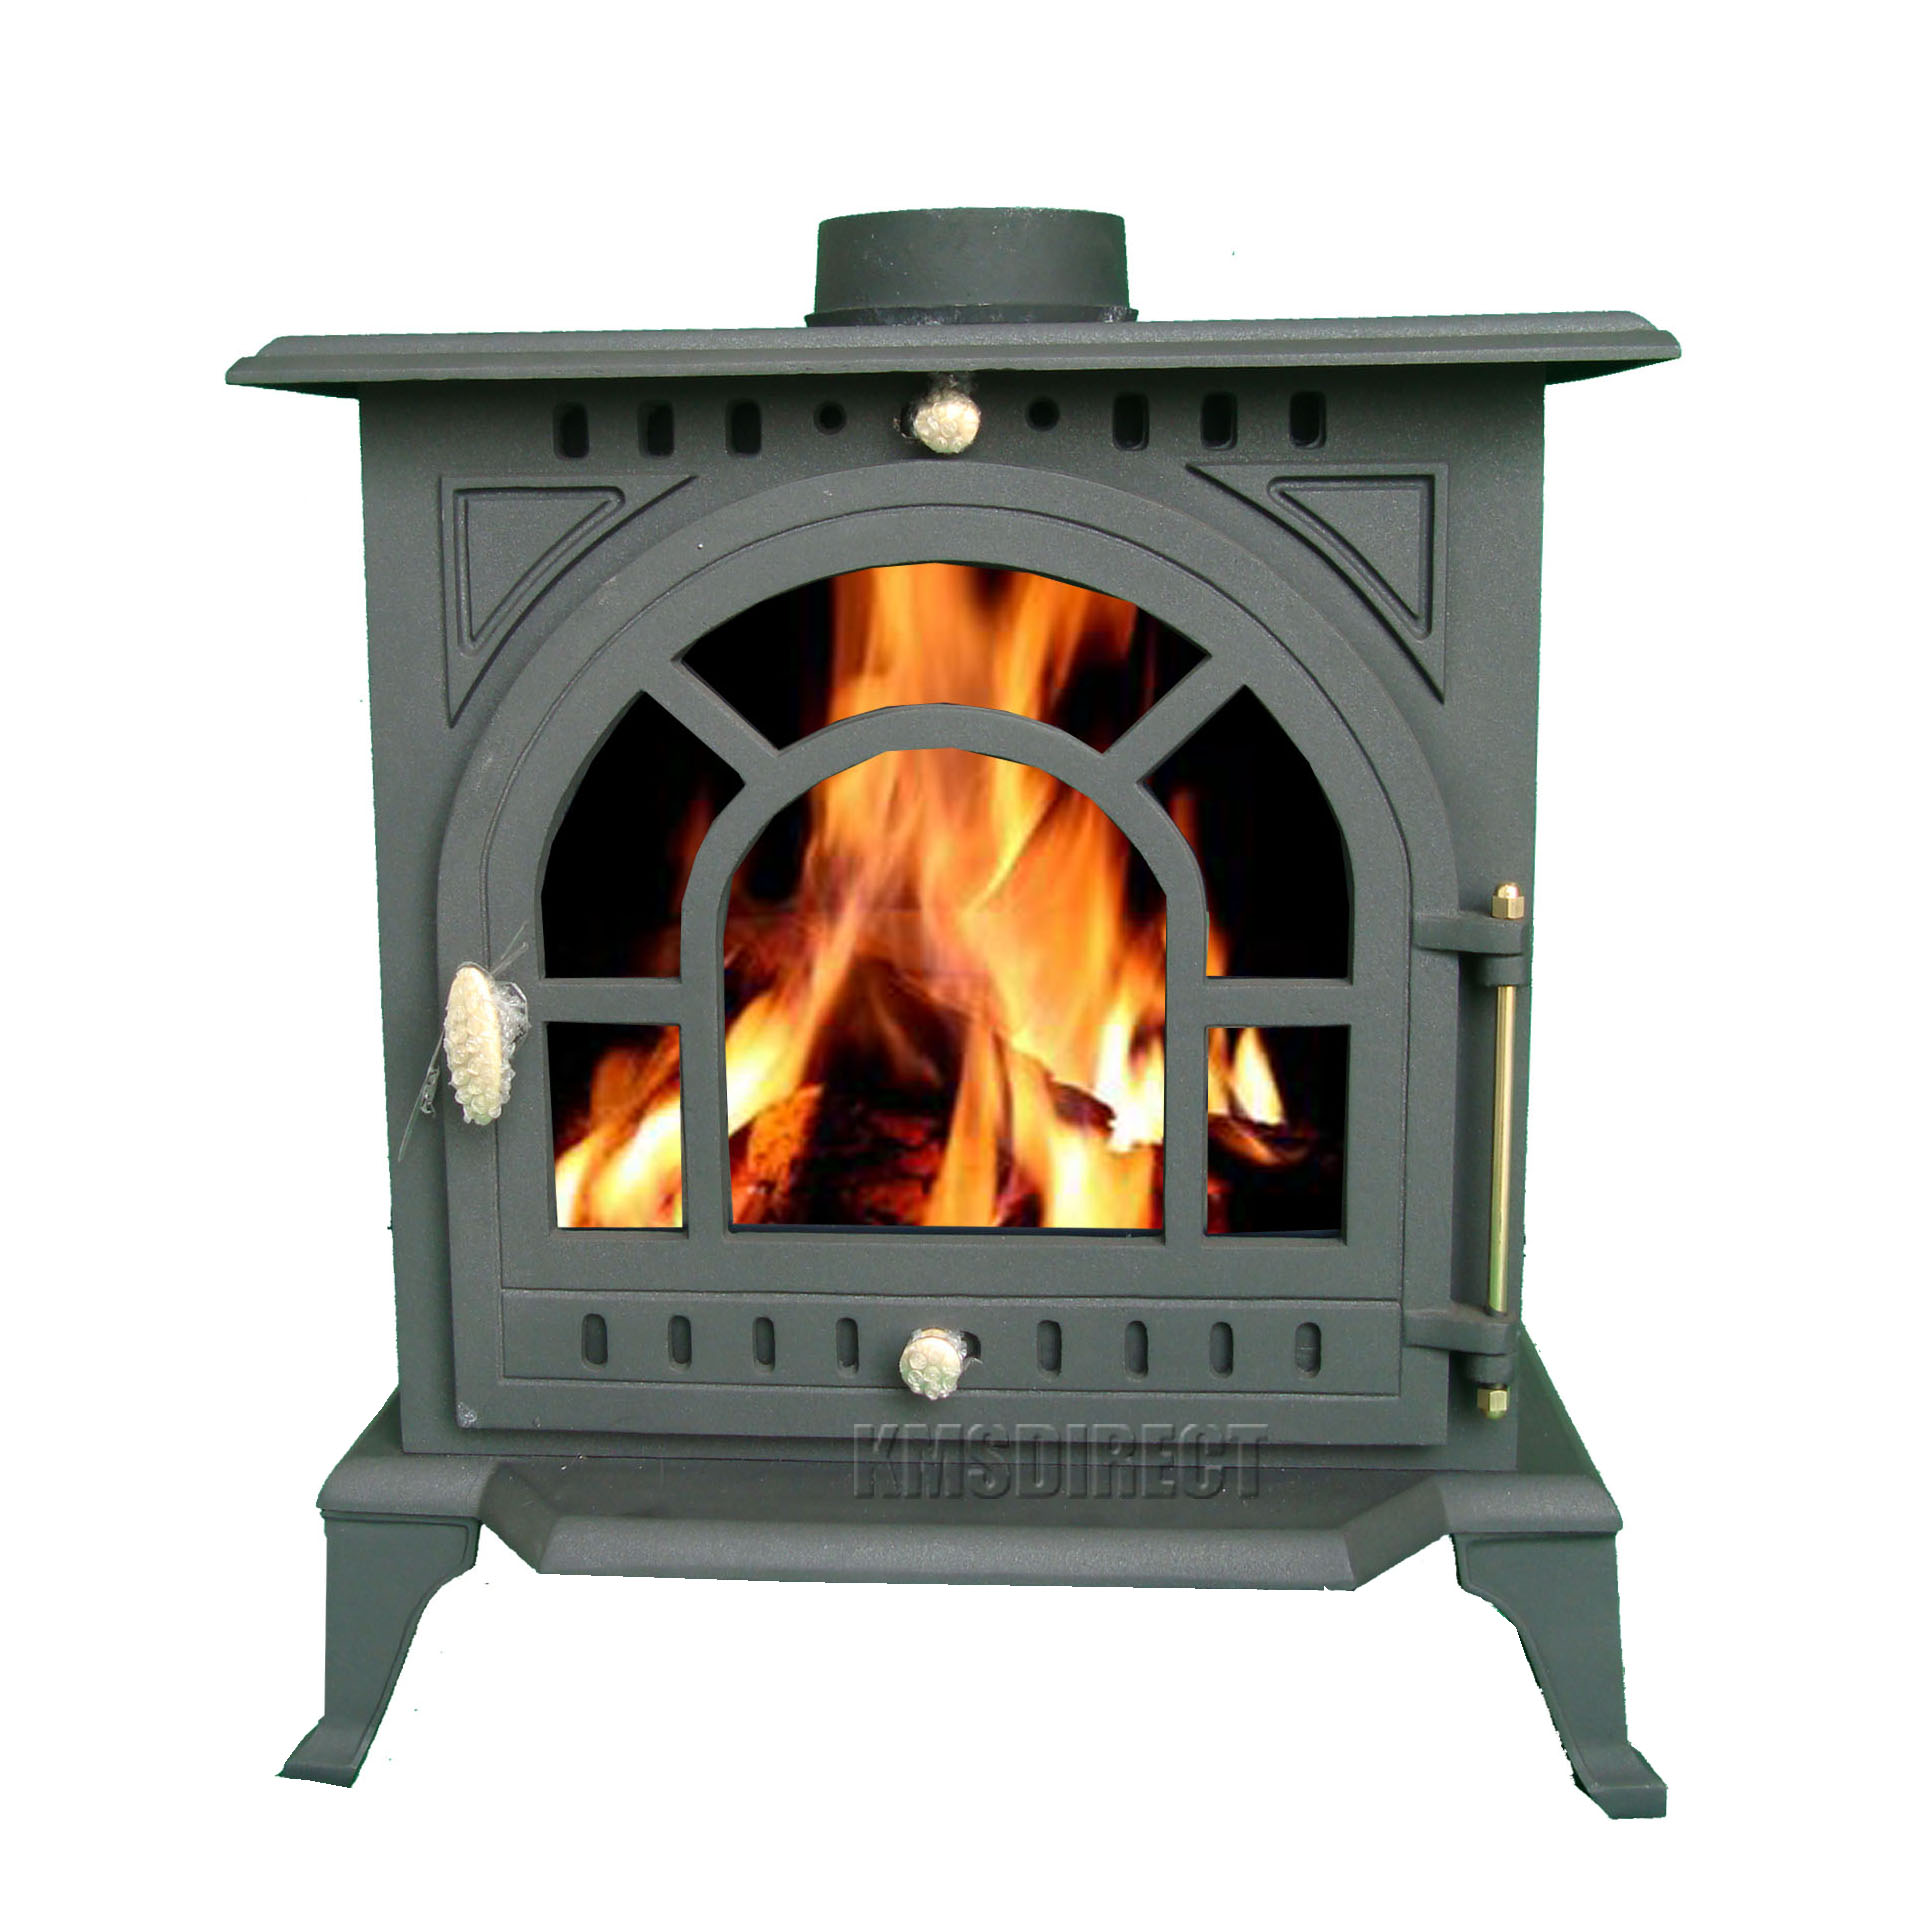 9kw ja005 high efficient cast iron log burner multifuel for Small efficient wood stoves